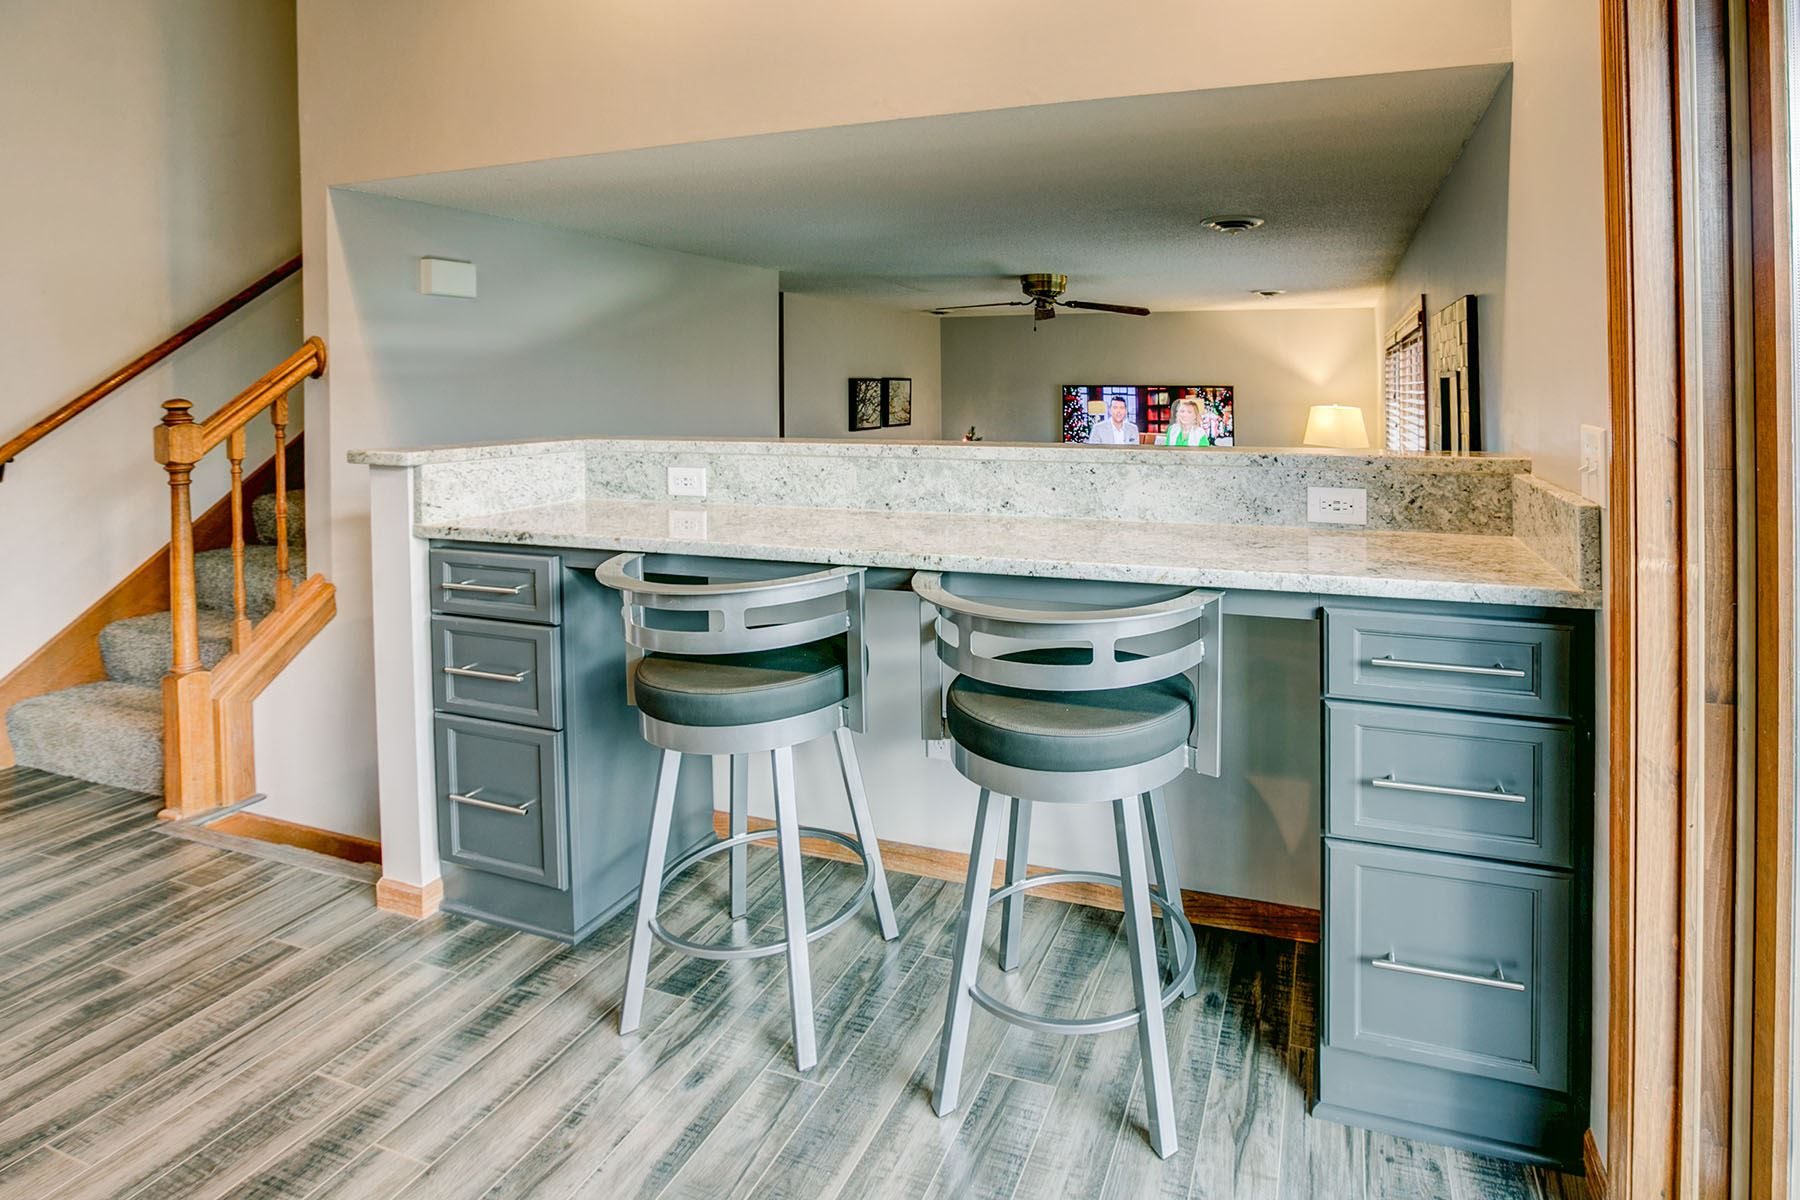 Rask Kitchen and Bathroom Remodel